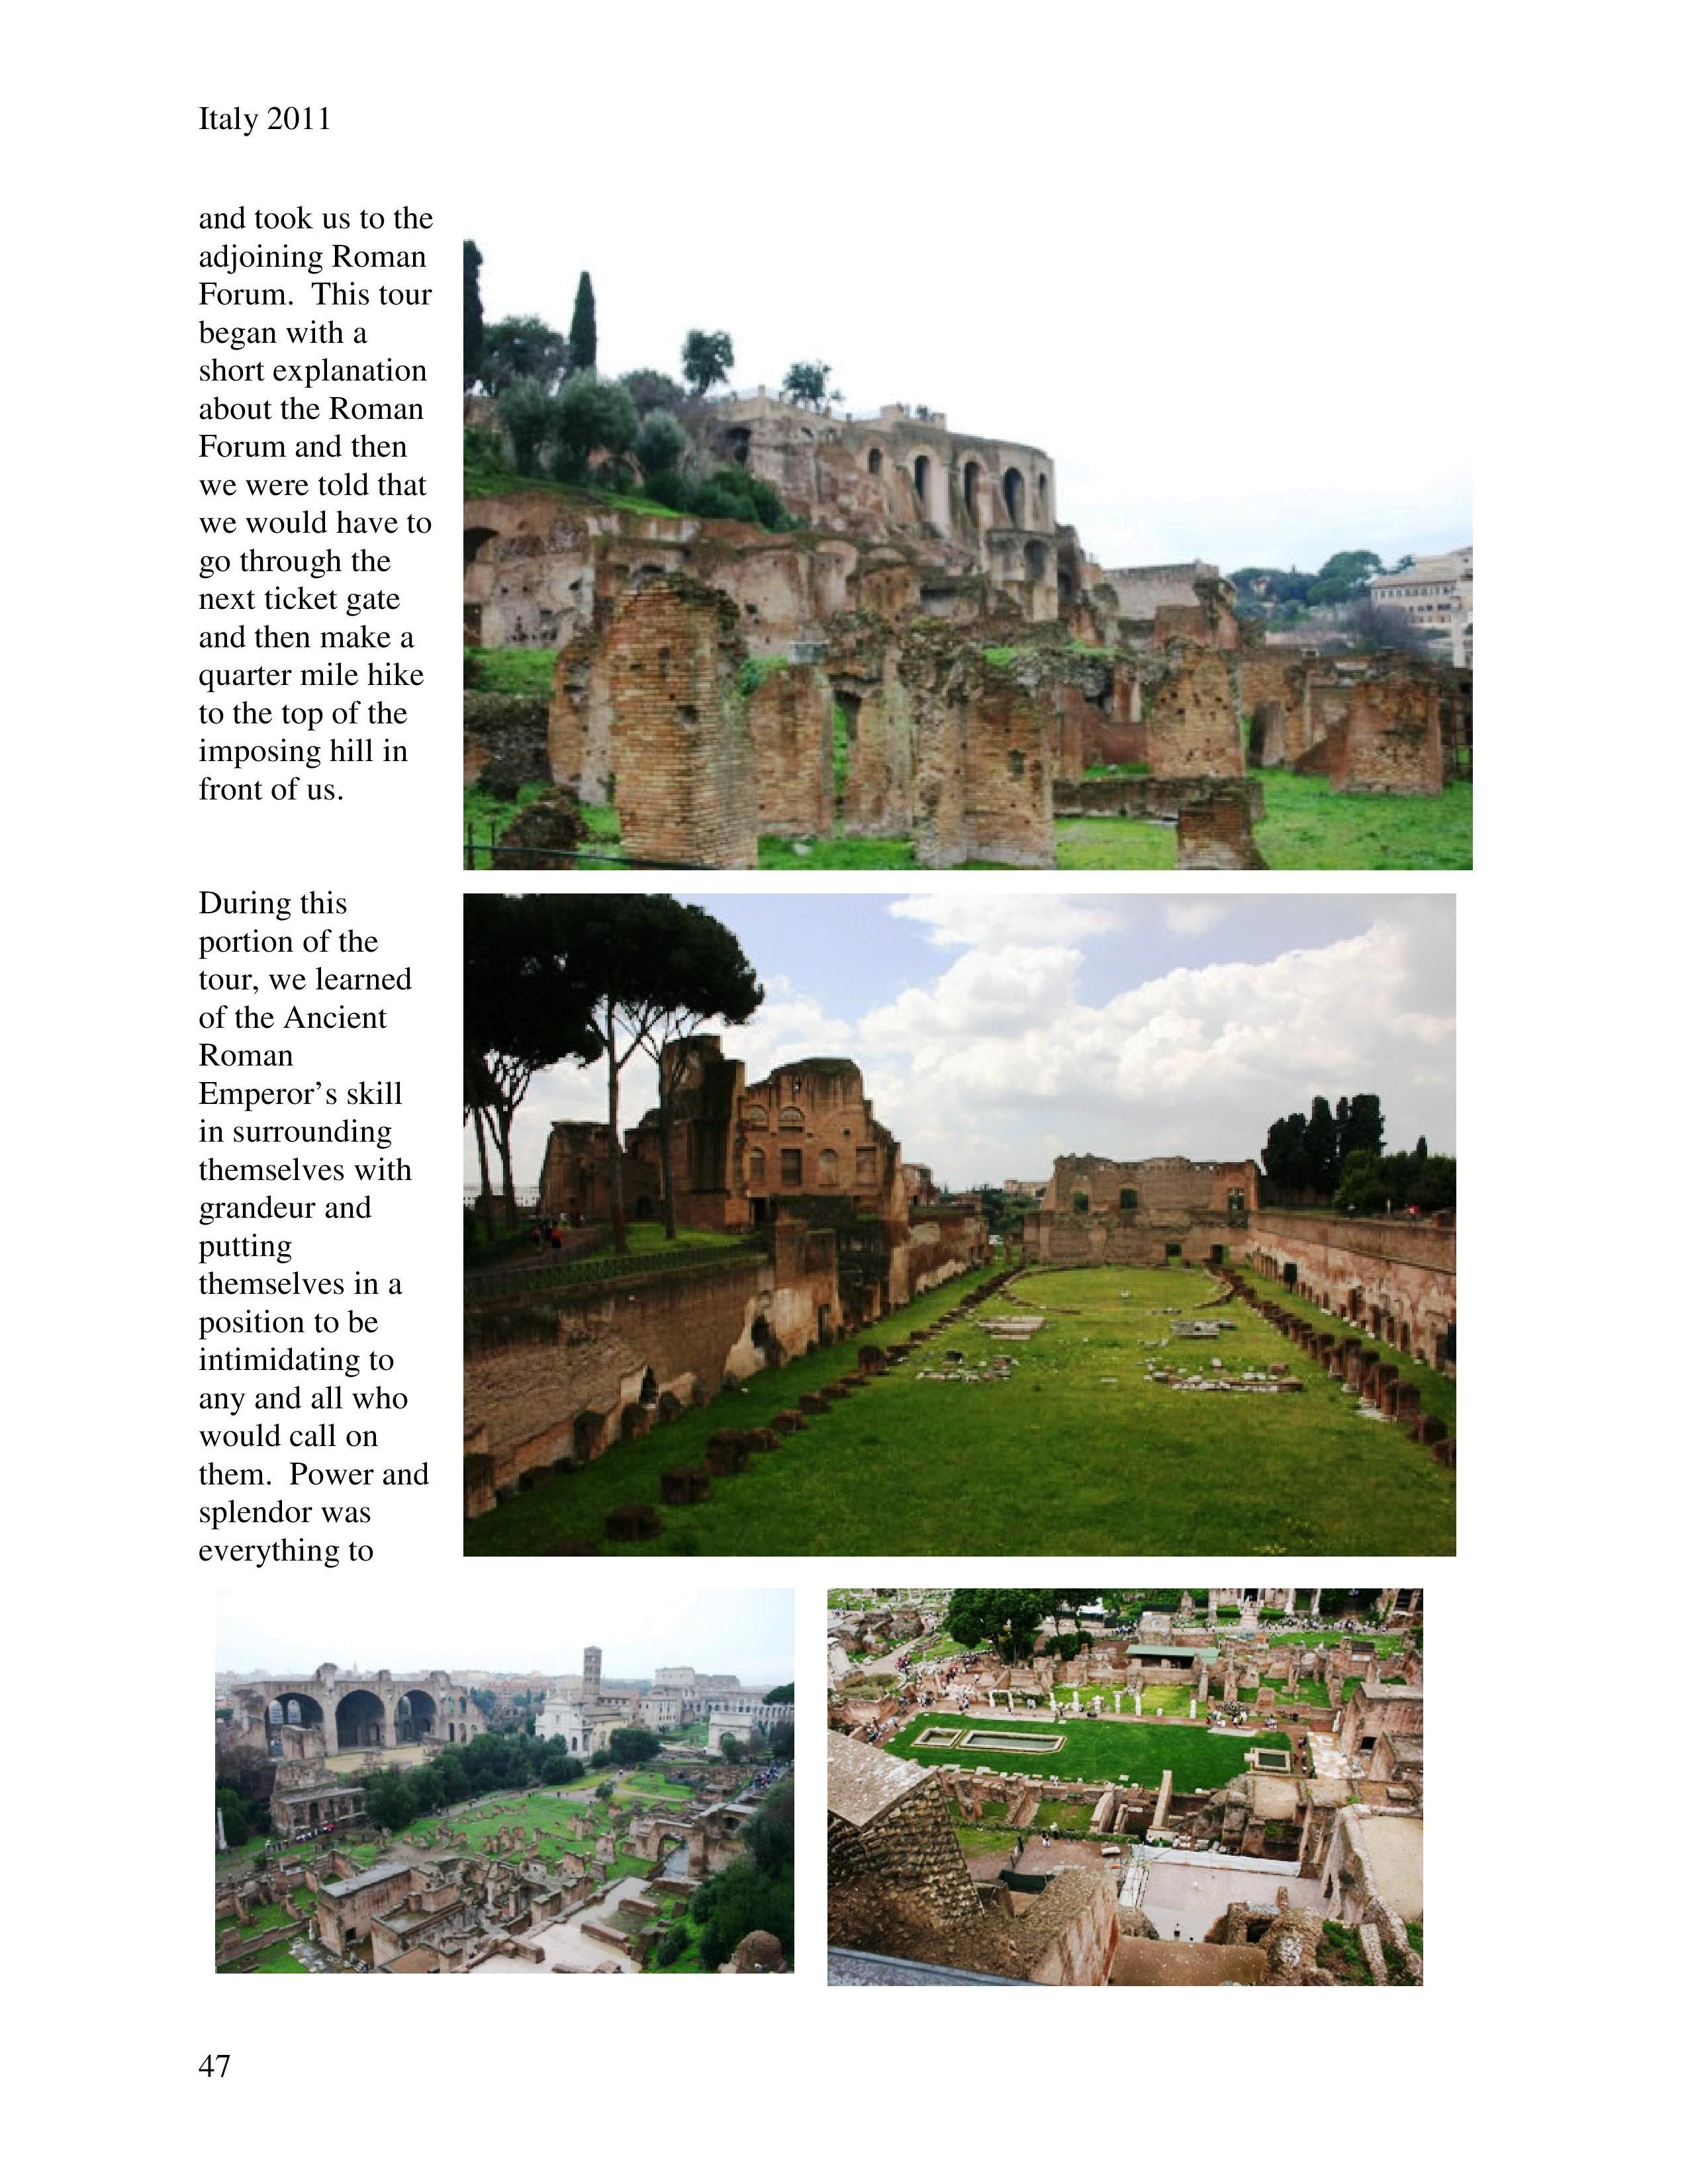 Italy 2011 May 3 - Day 5-page-006